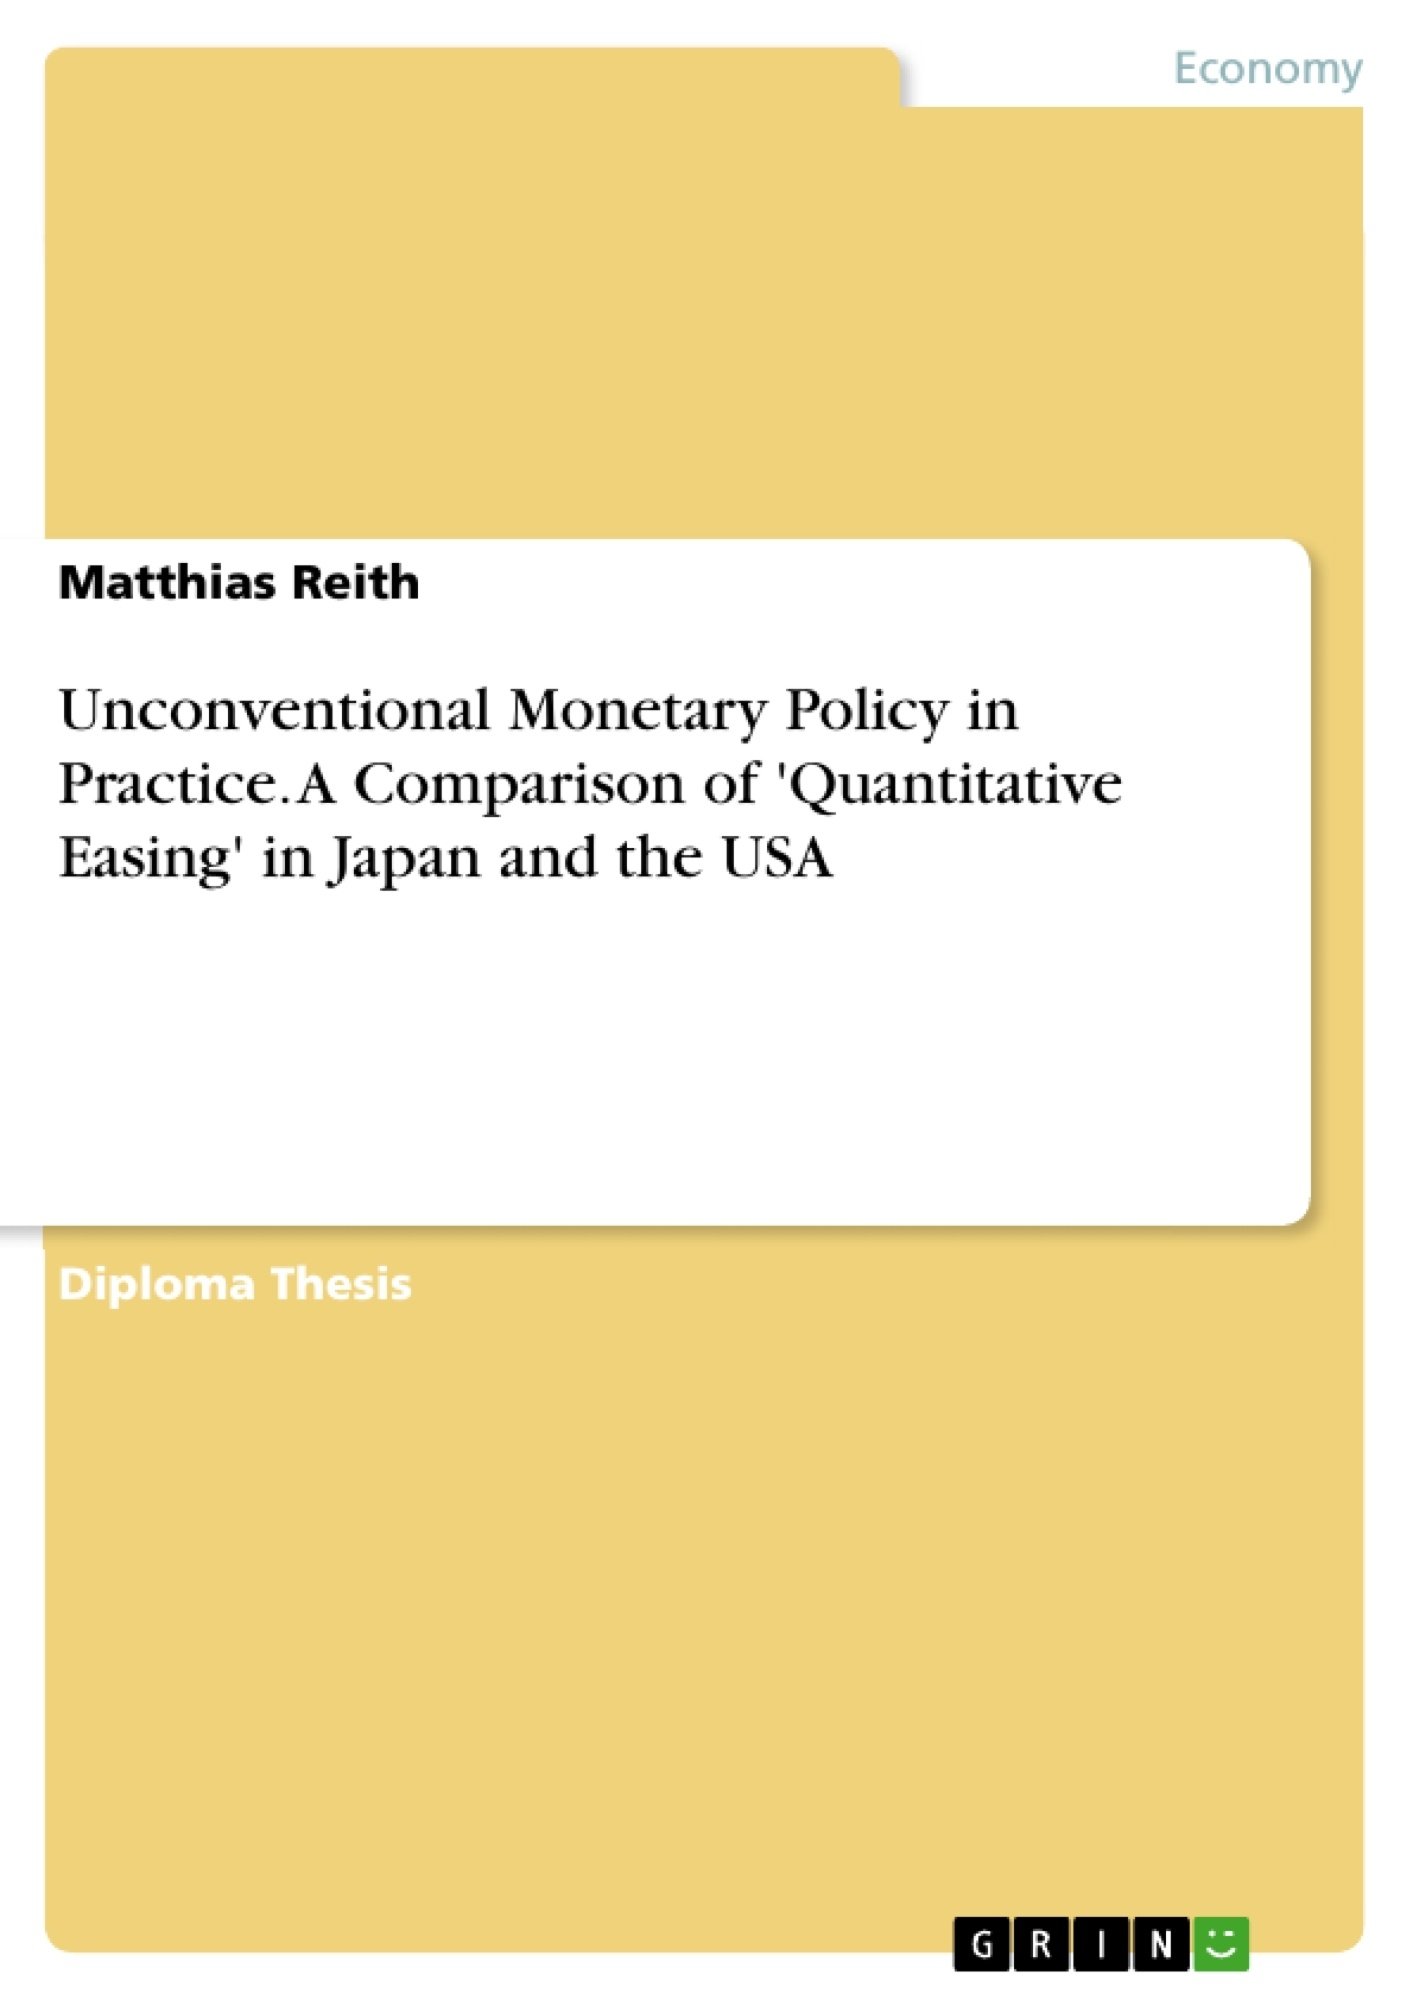 Title: Unconventional Monetary Policy in Practice. A Comparison of 'Quantitative Easing' in Japan and the USA